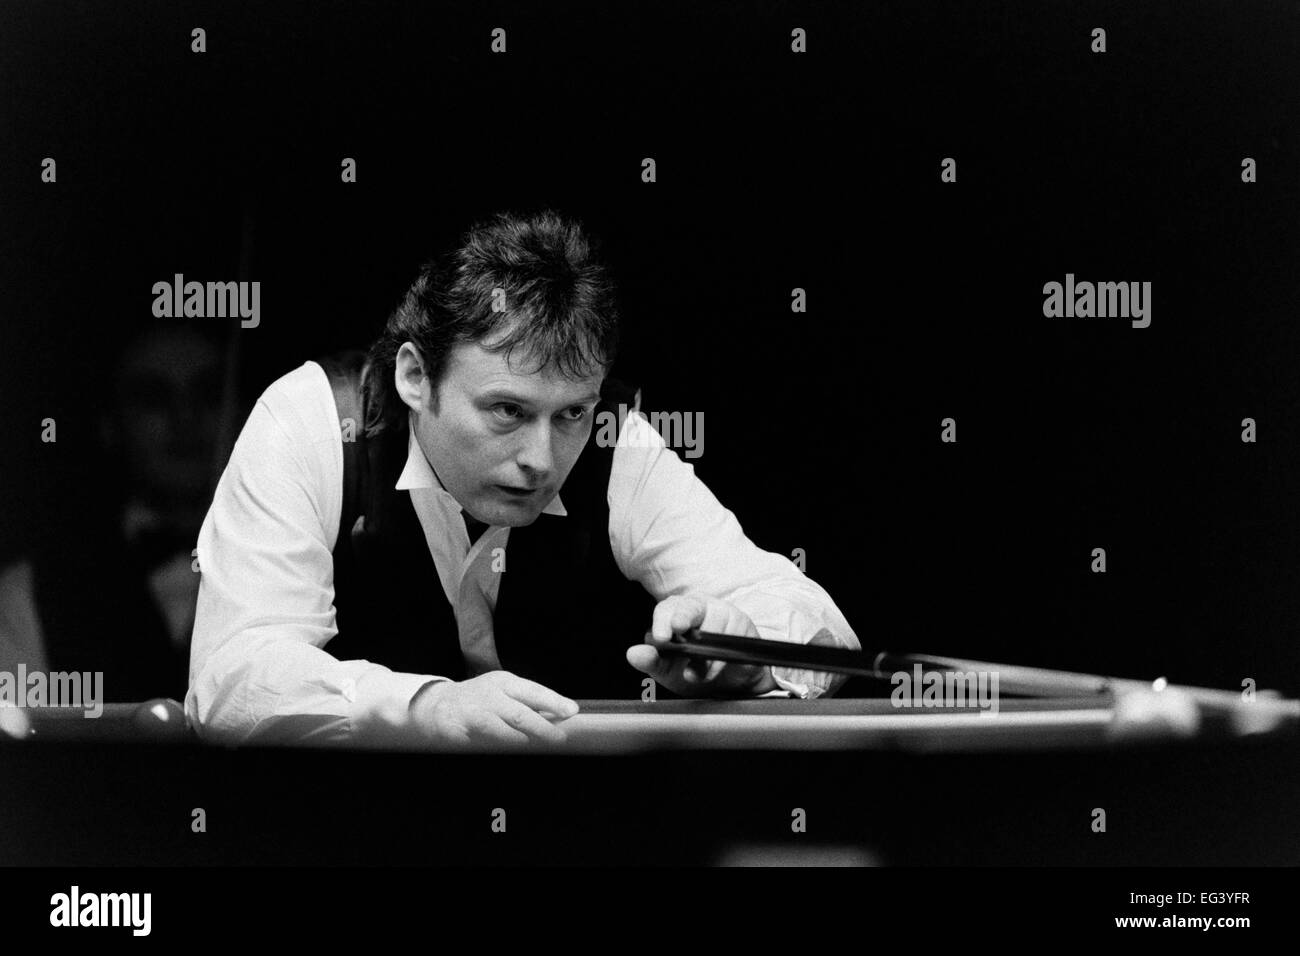 Jimmy White, the British professional snooker player, nicknamed 'The Whirlwind' - Stock Image